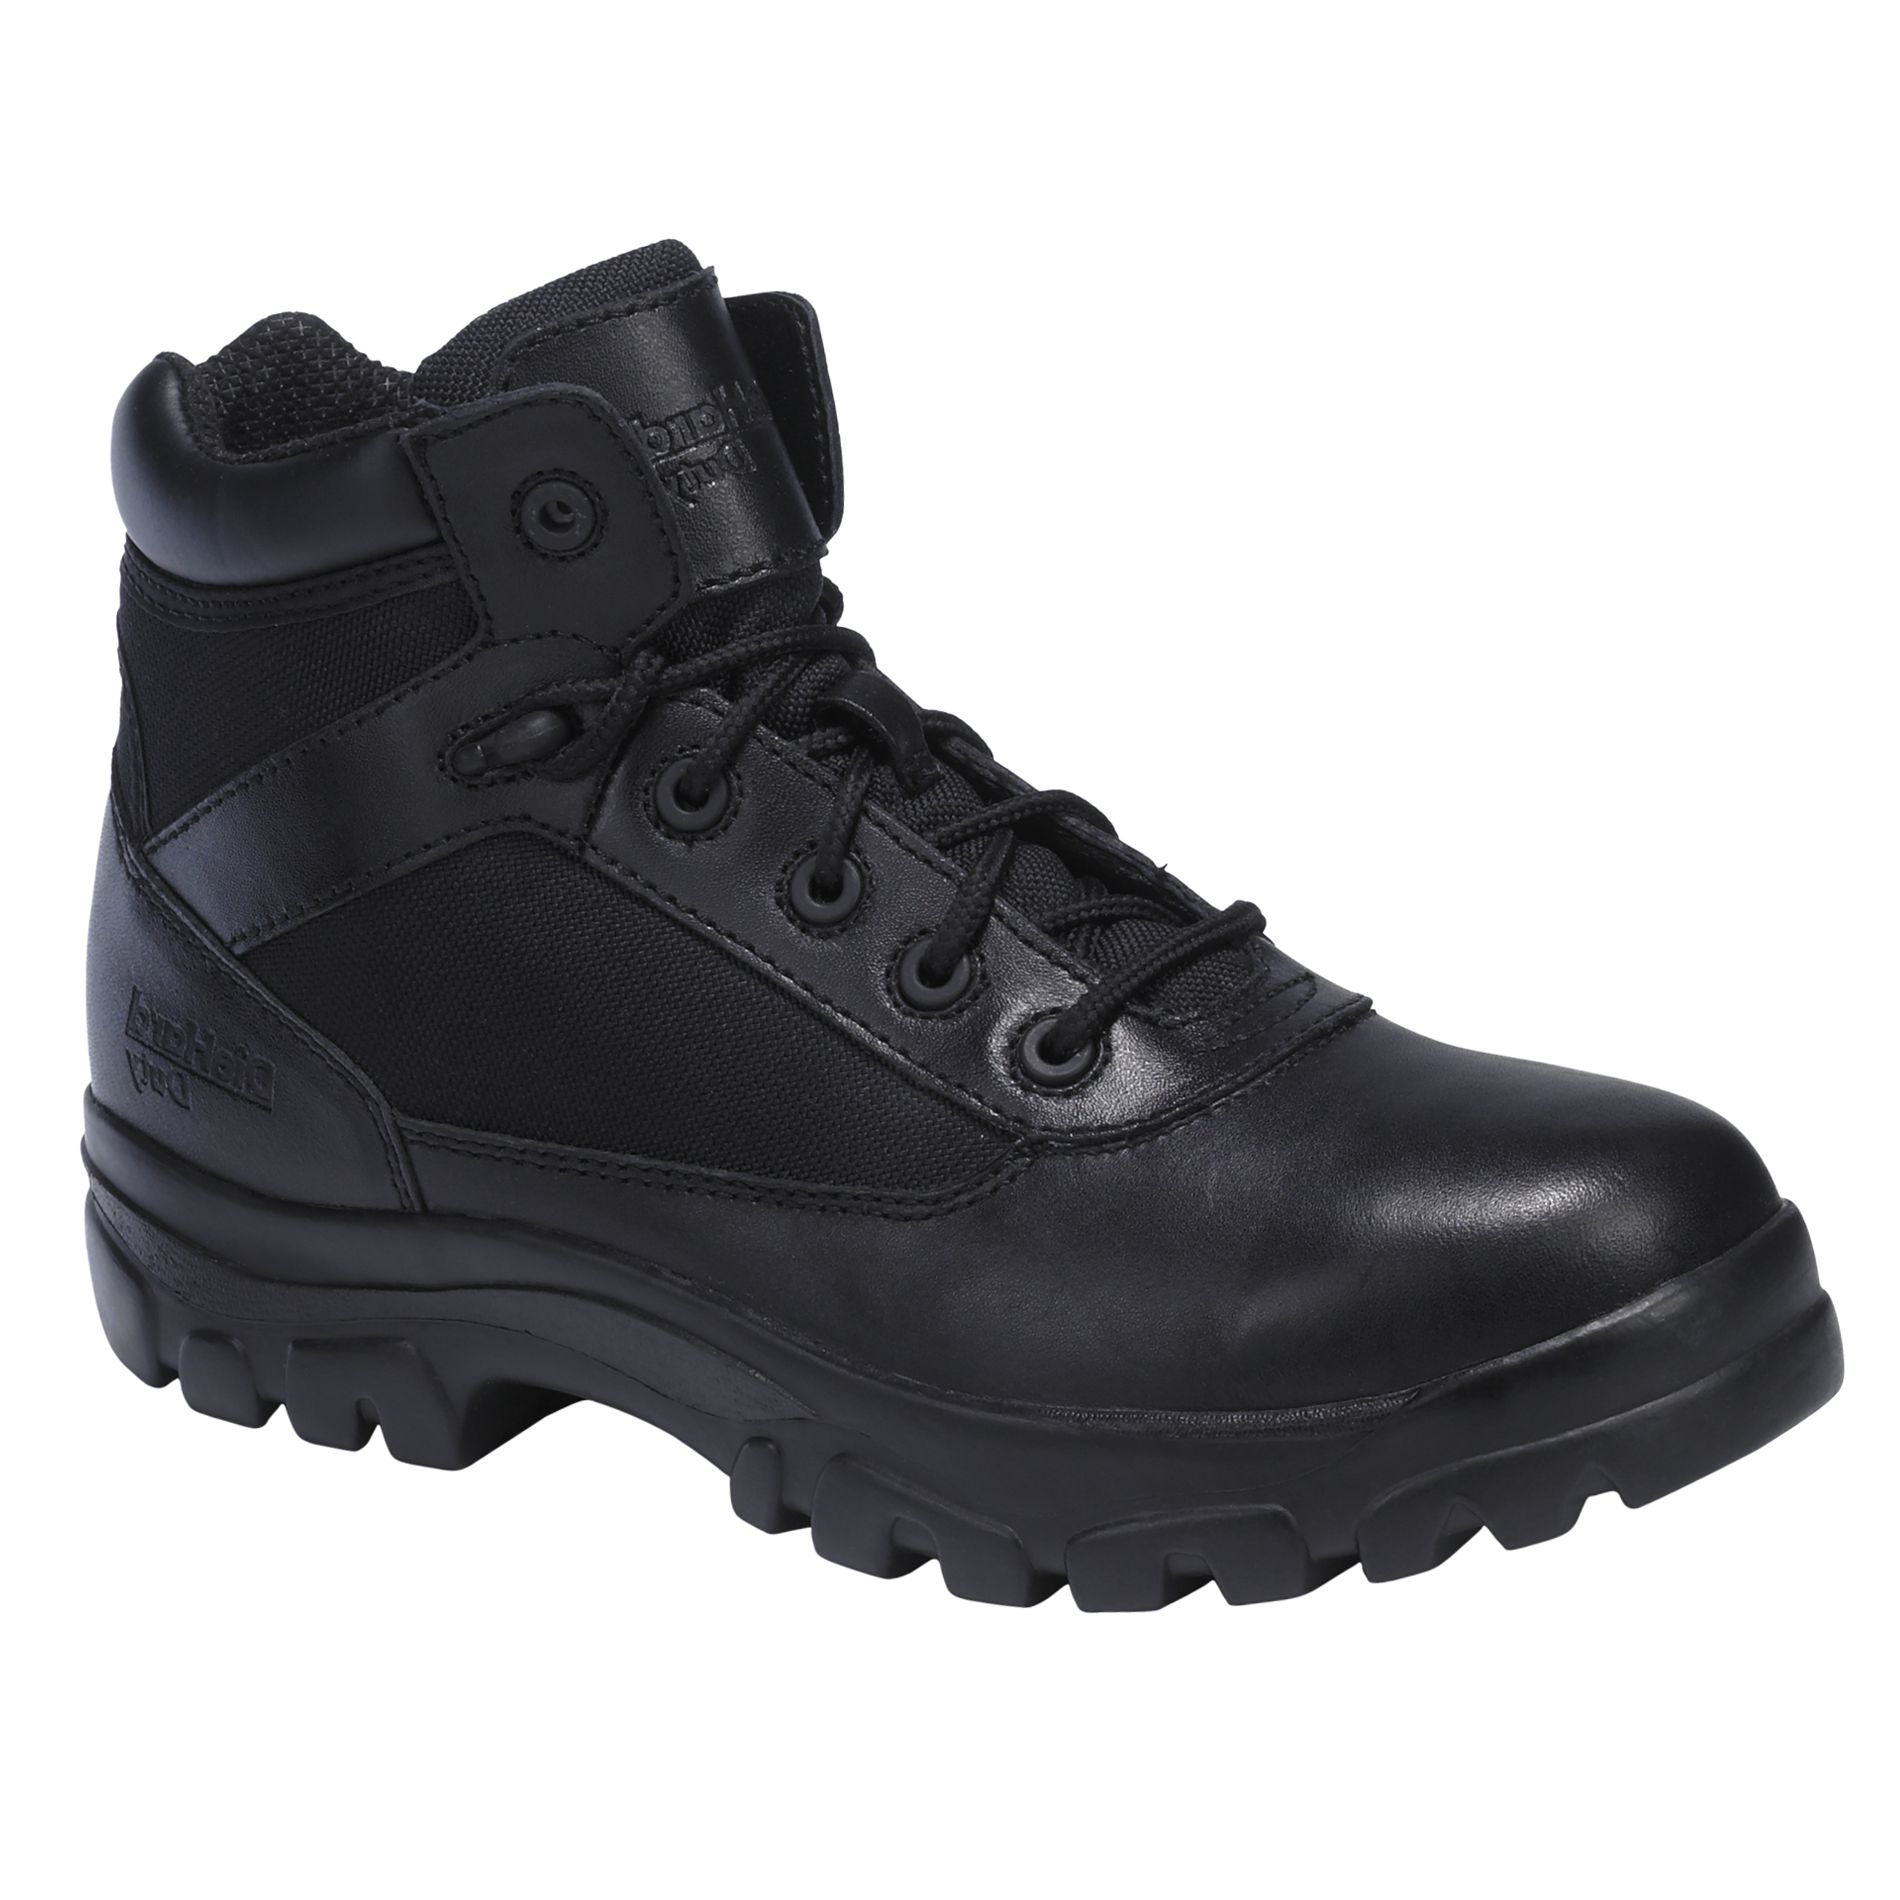 Men's 6 inch Lace-To-Toe Work Boot - Black